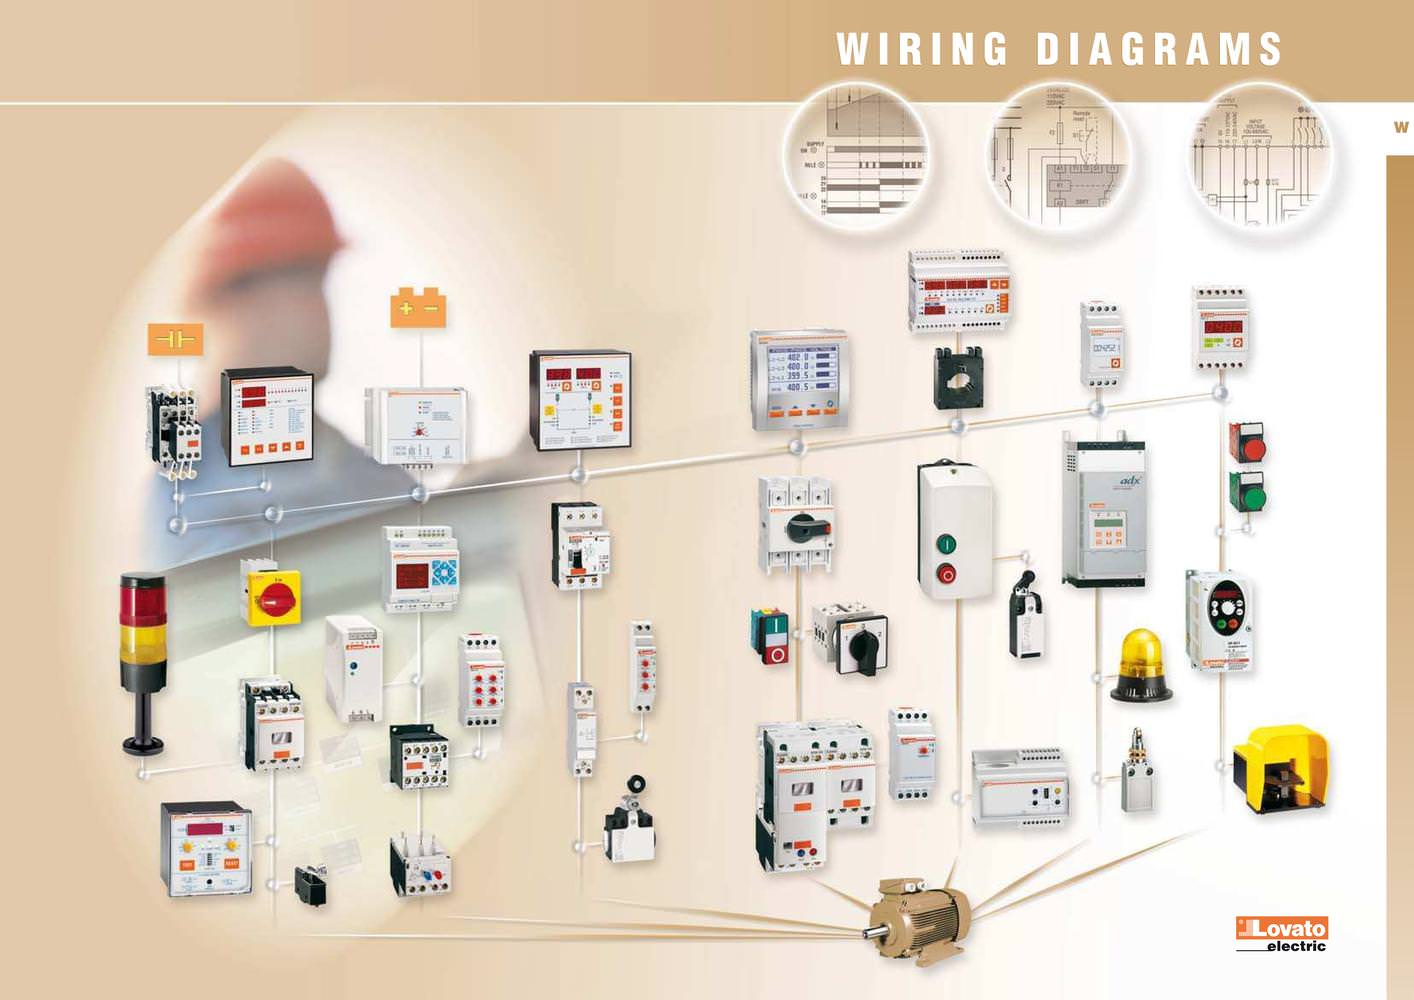 wiring diagrams 99587_1b wiring diagrams lovato electric pdf catalogue technical 3 phase manual changeover switch wiring diagram at aneh.co